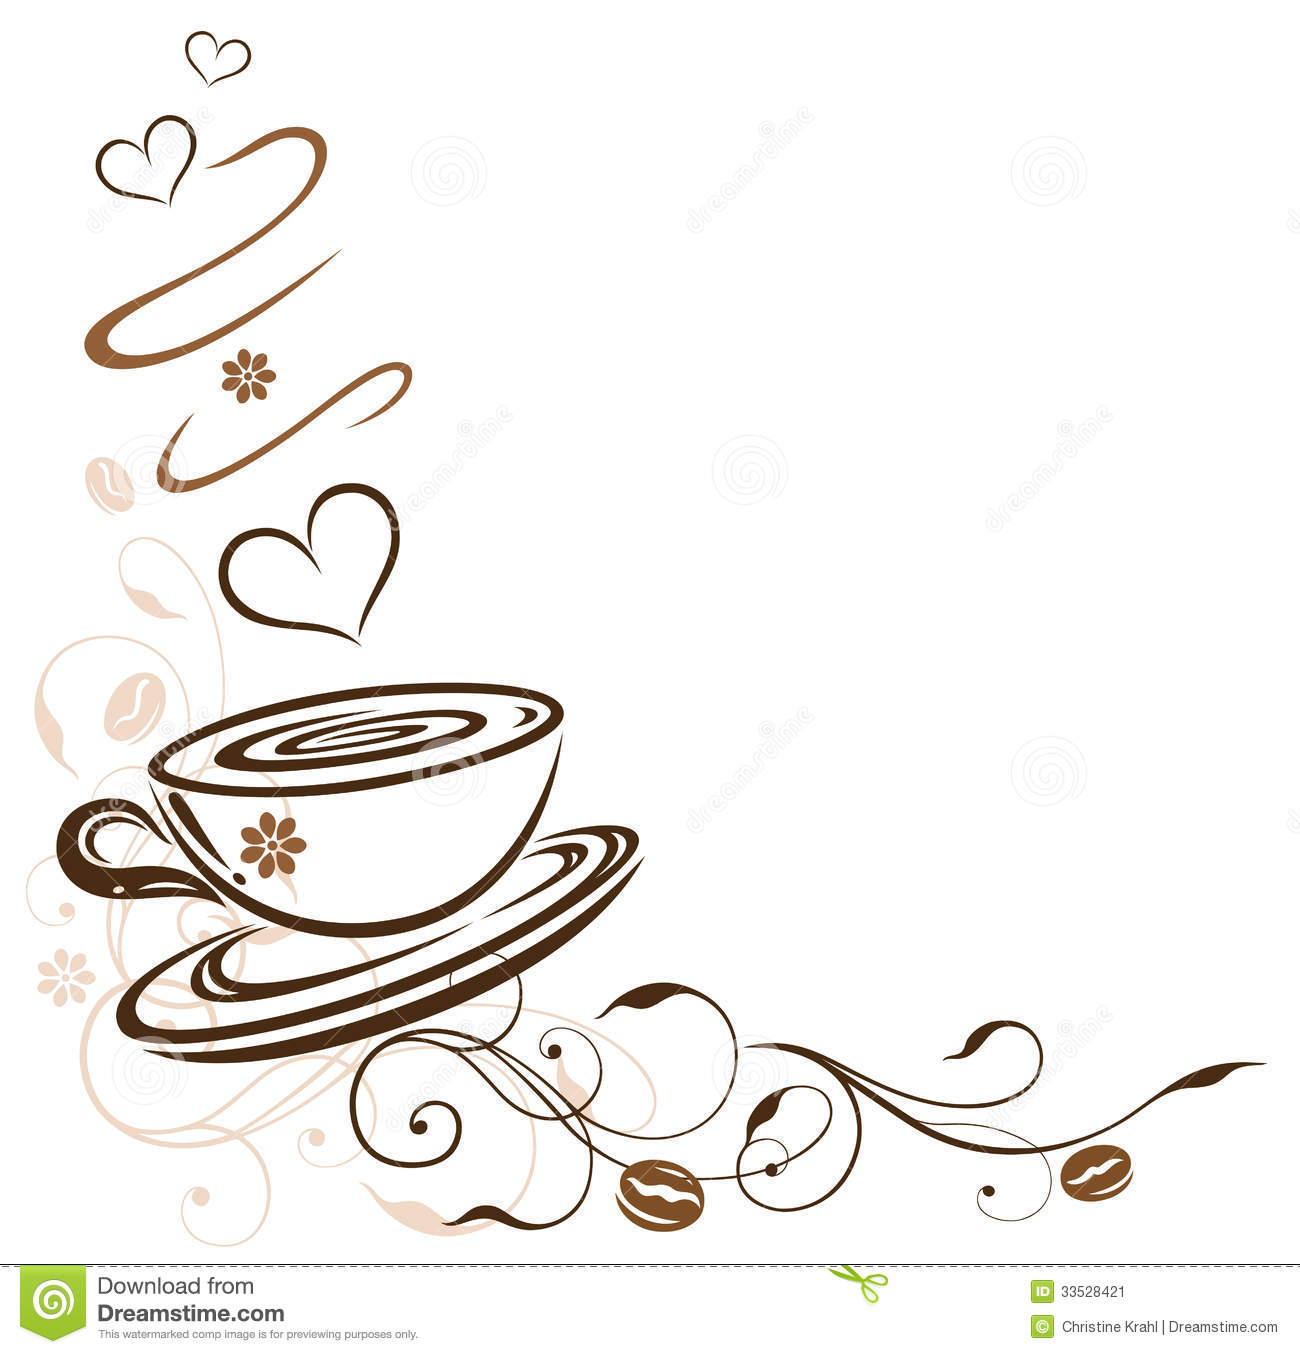 Breakfast clipart border Jpeg and Clipart blog Res: